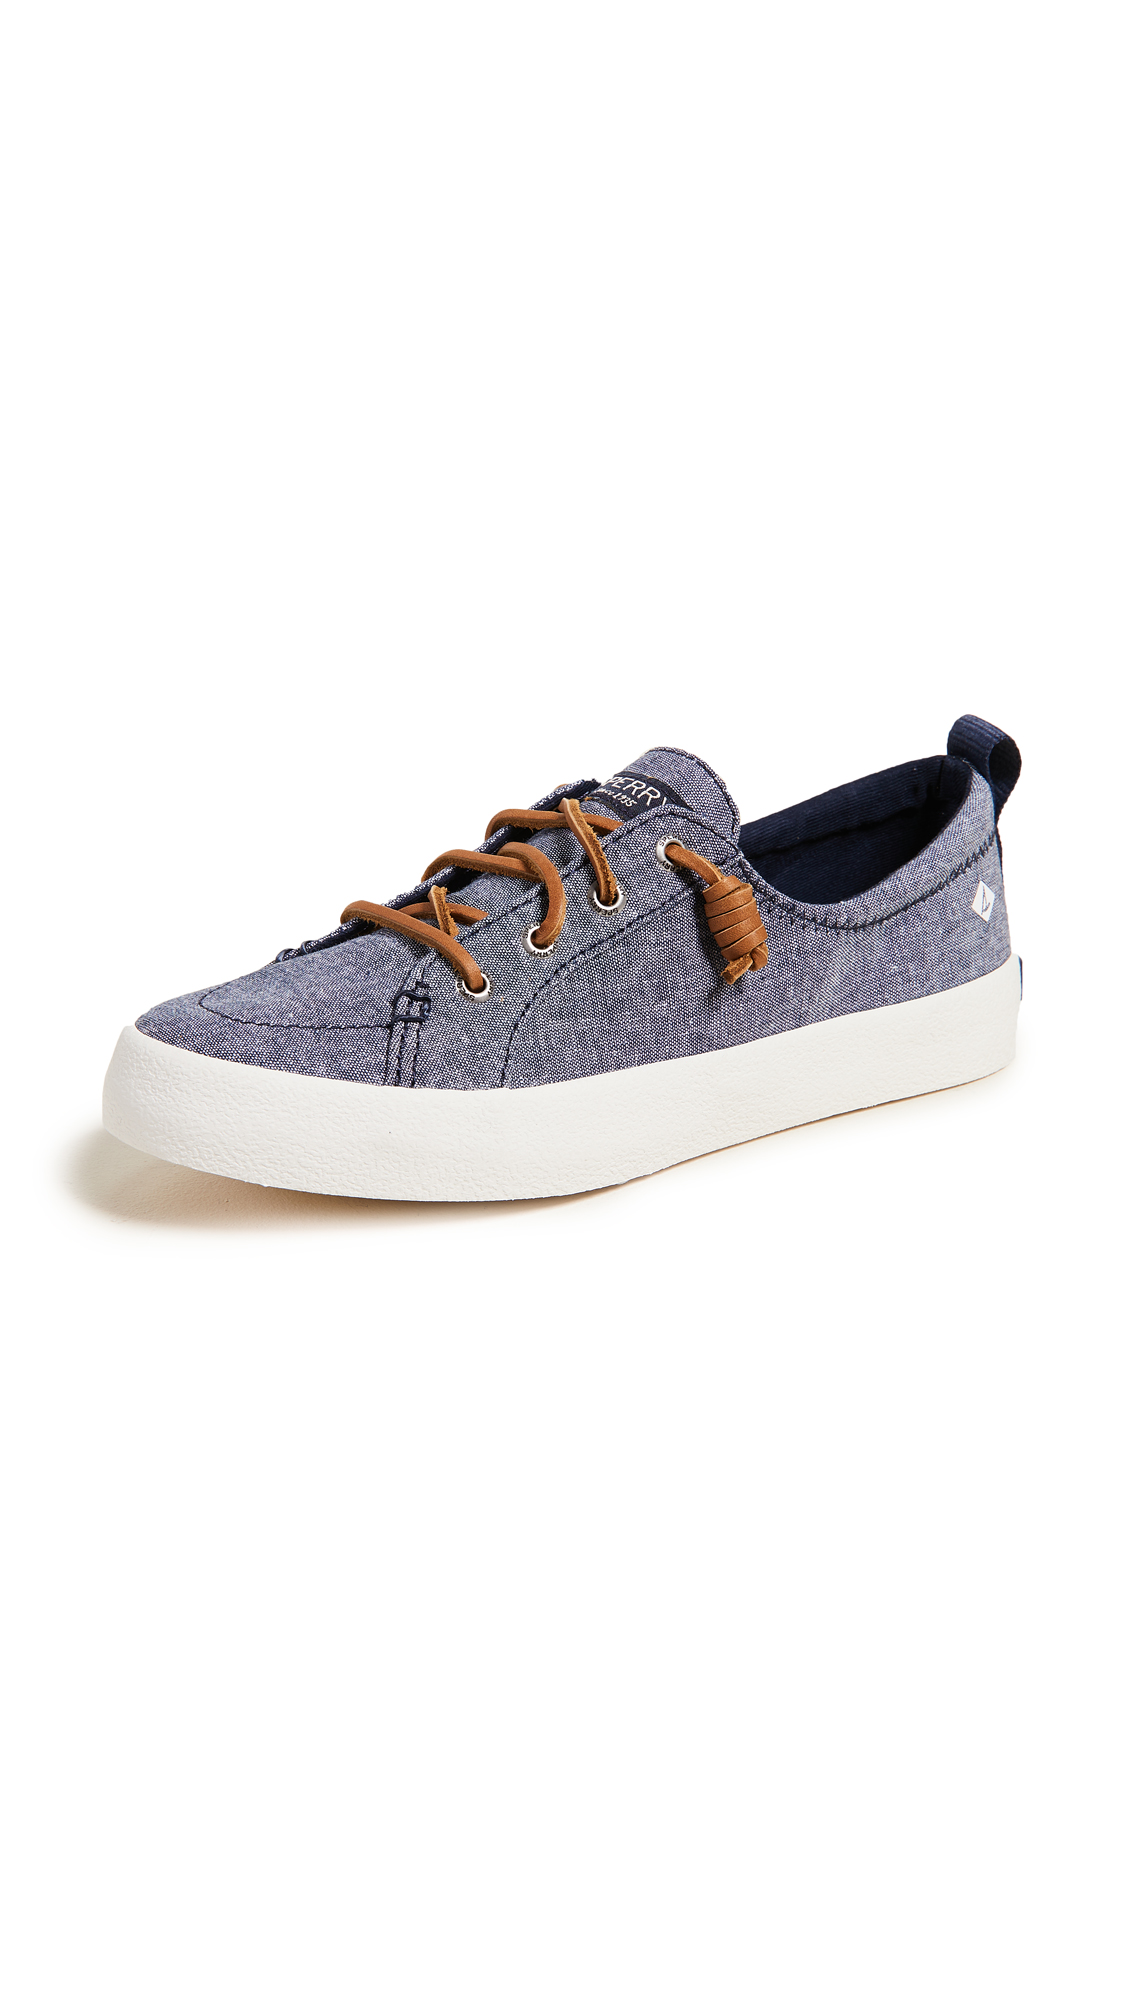 Photo of Sperry Crest Vibe Crepe Chambray Sneakers - buy Sperry shoes